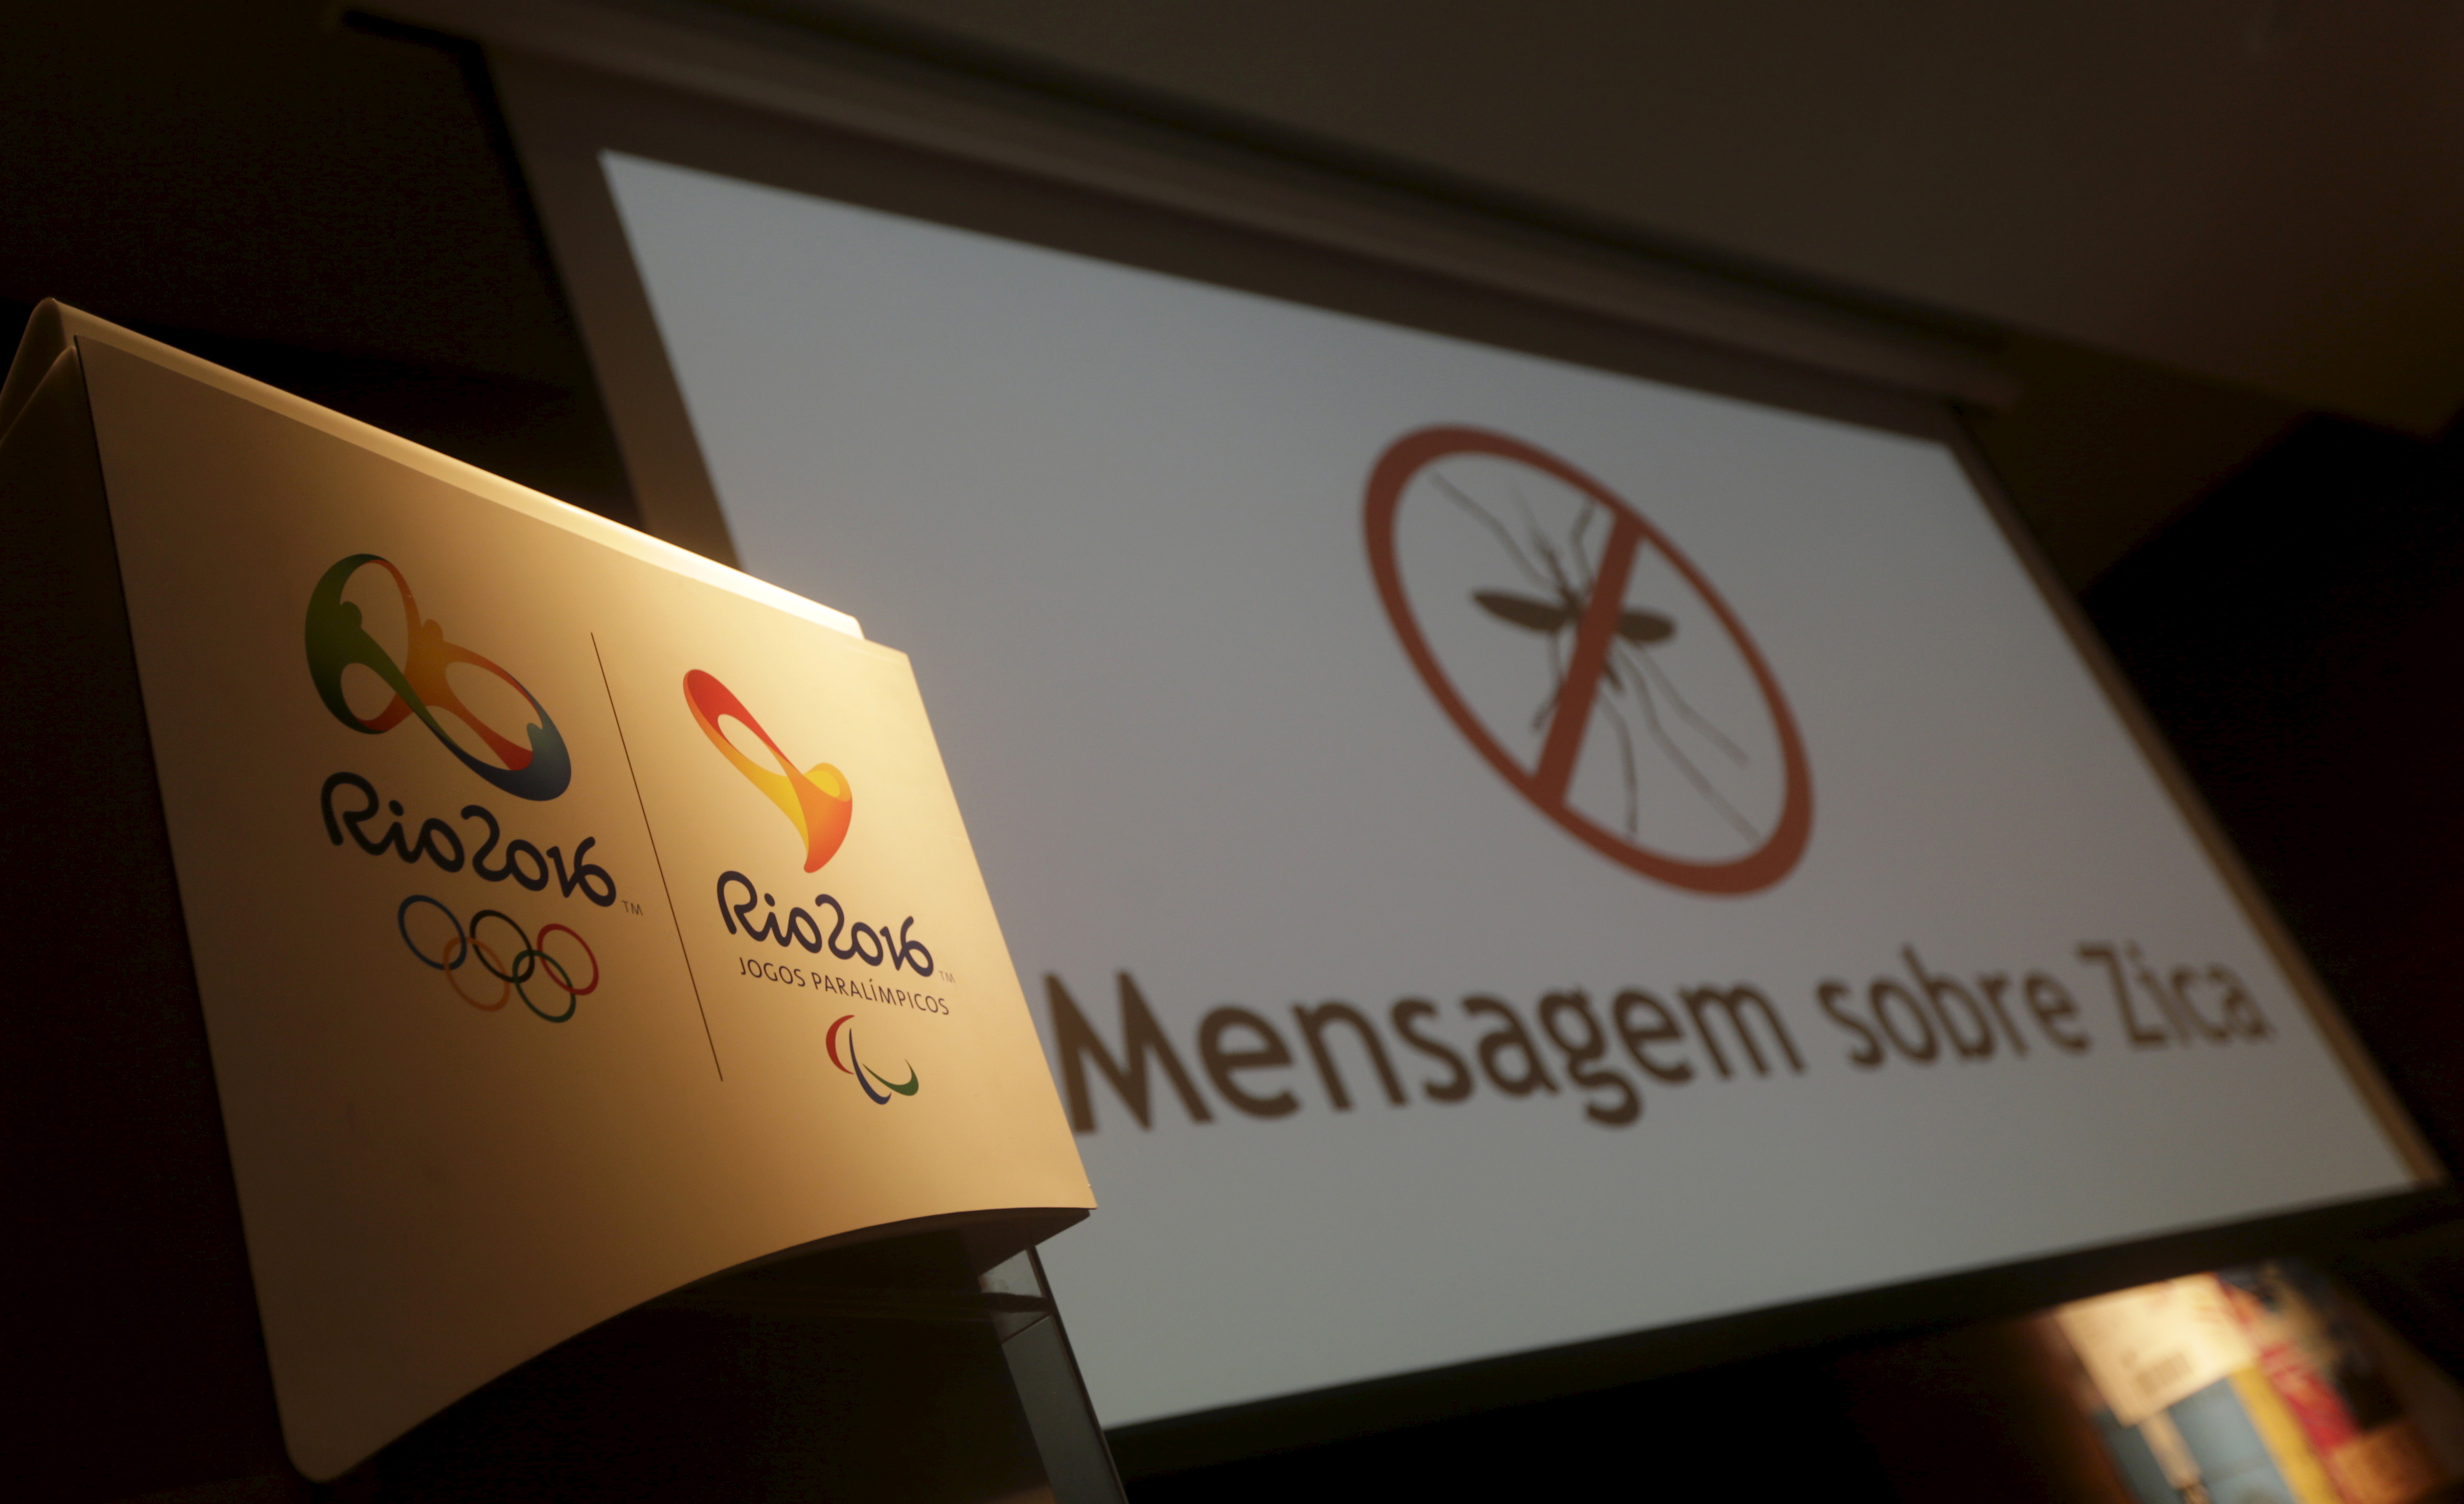 The logos of the Rio 2016 Olympic Games and Rio 2016 Paralympic Games are pictured next to a message on a screen that reads  Message about Zika  during a media briefing in Rio de Janeiro, Brazil on Feb. 2, 2016.